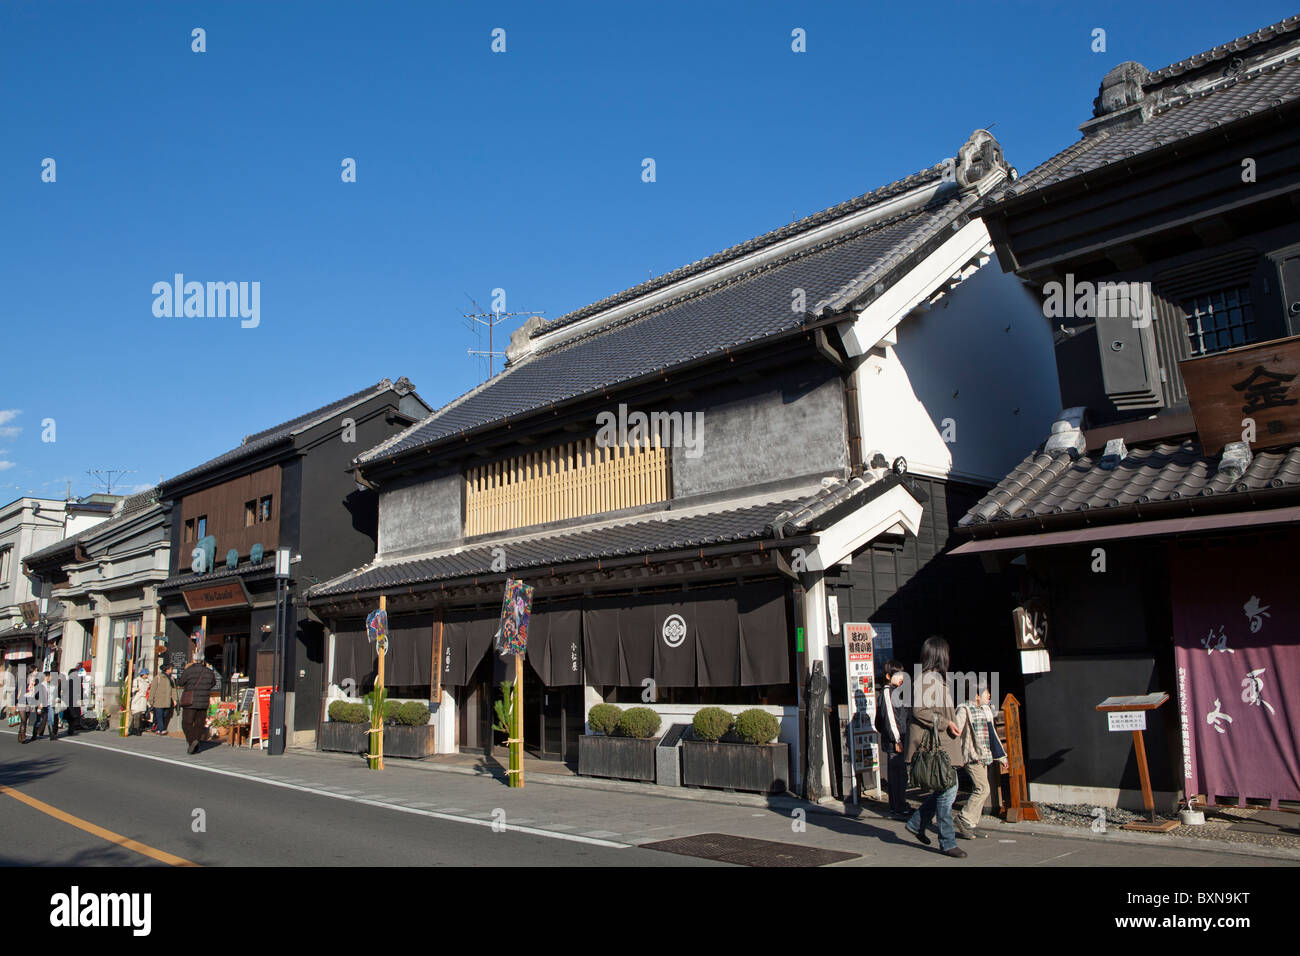 Le Kawagoe Ichiban Gai Street est bordée de bâtiments d'architecture intrigante Kurazukuri Photo Stock